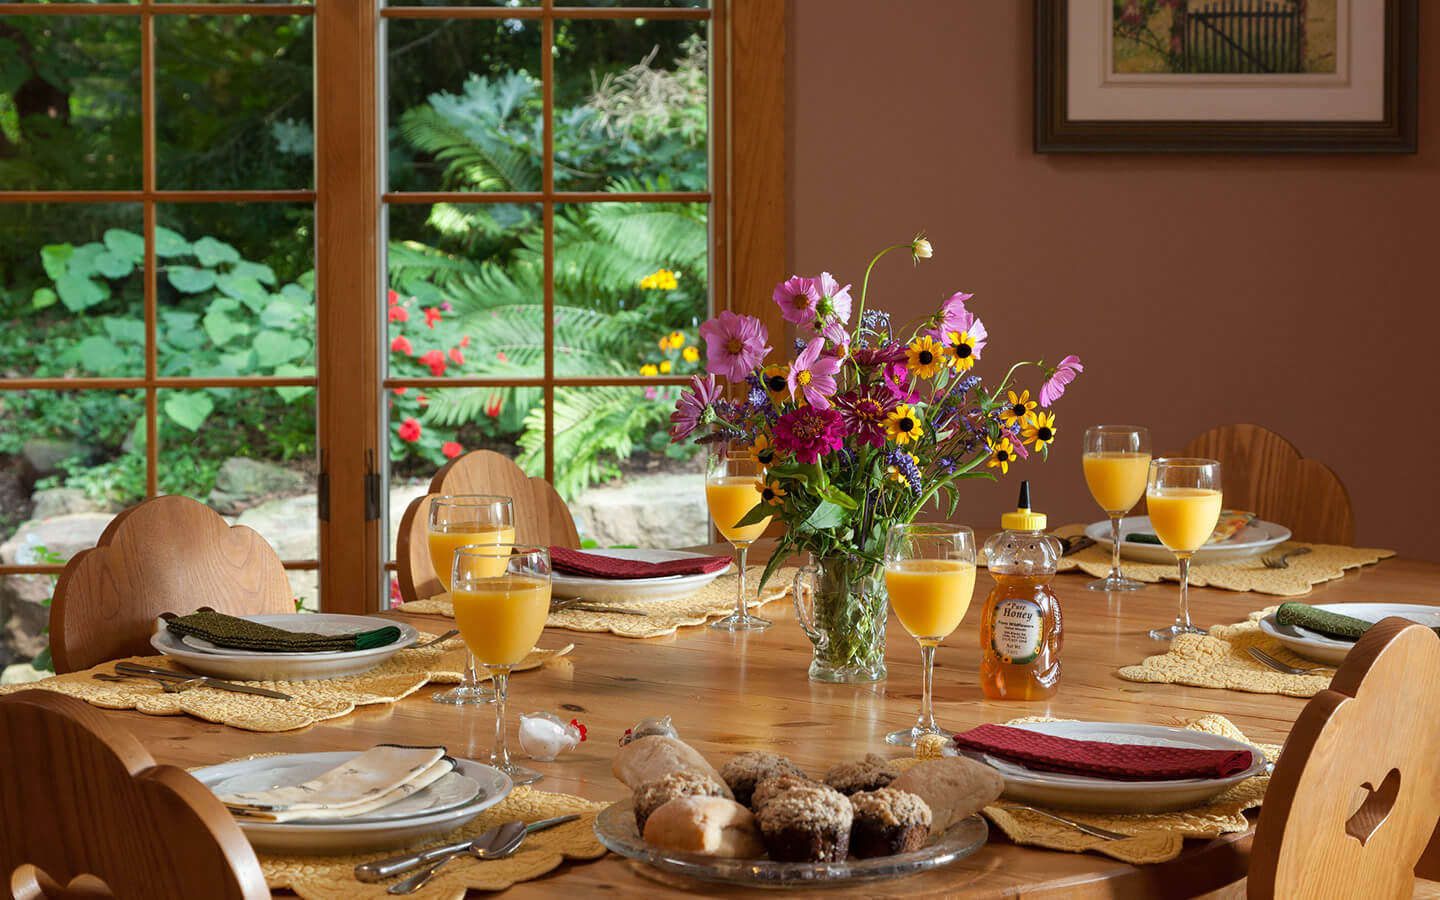 Dining room table set for breakfast at our B&B in Lancaster County